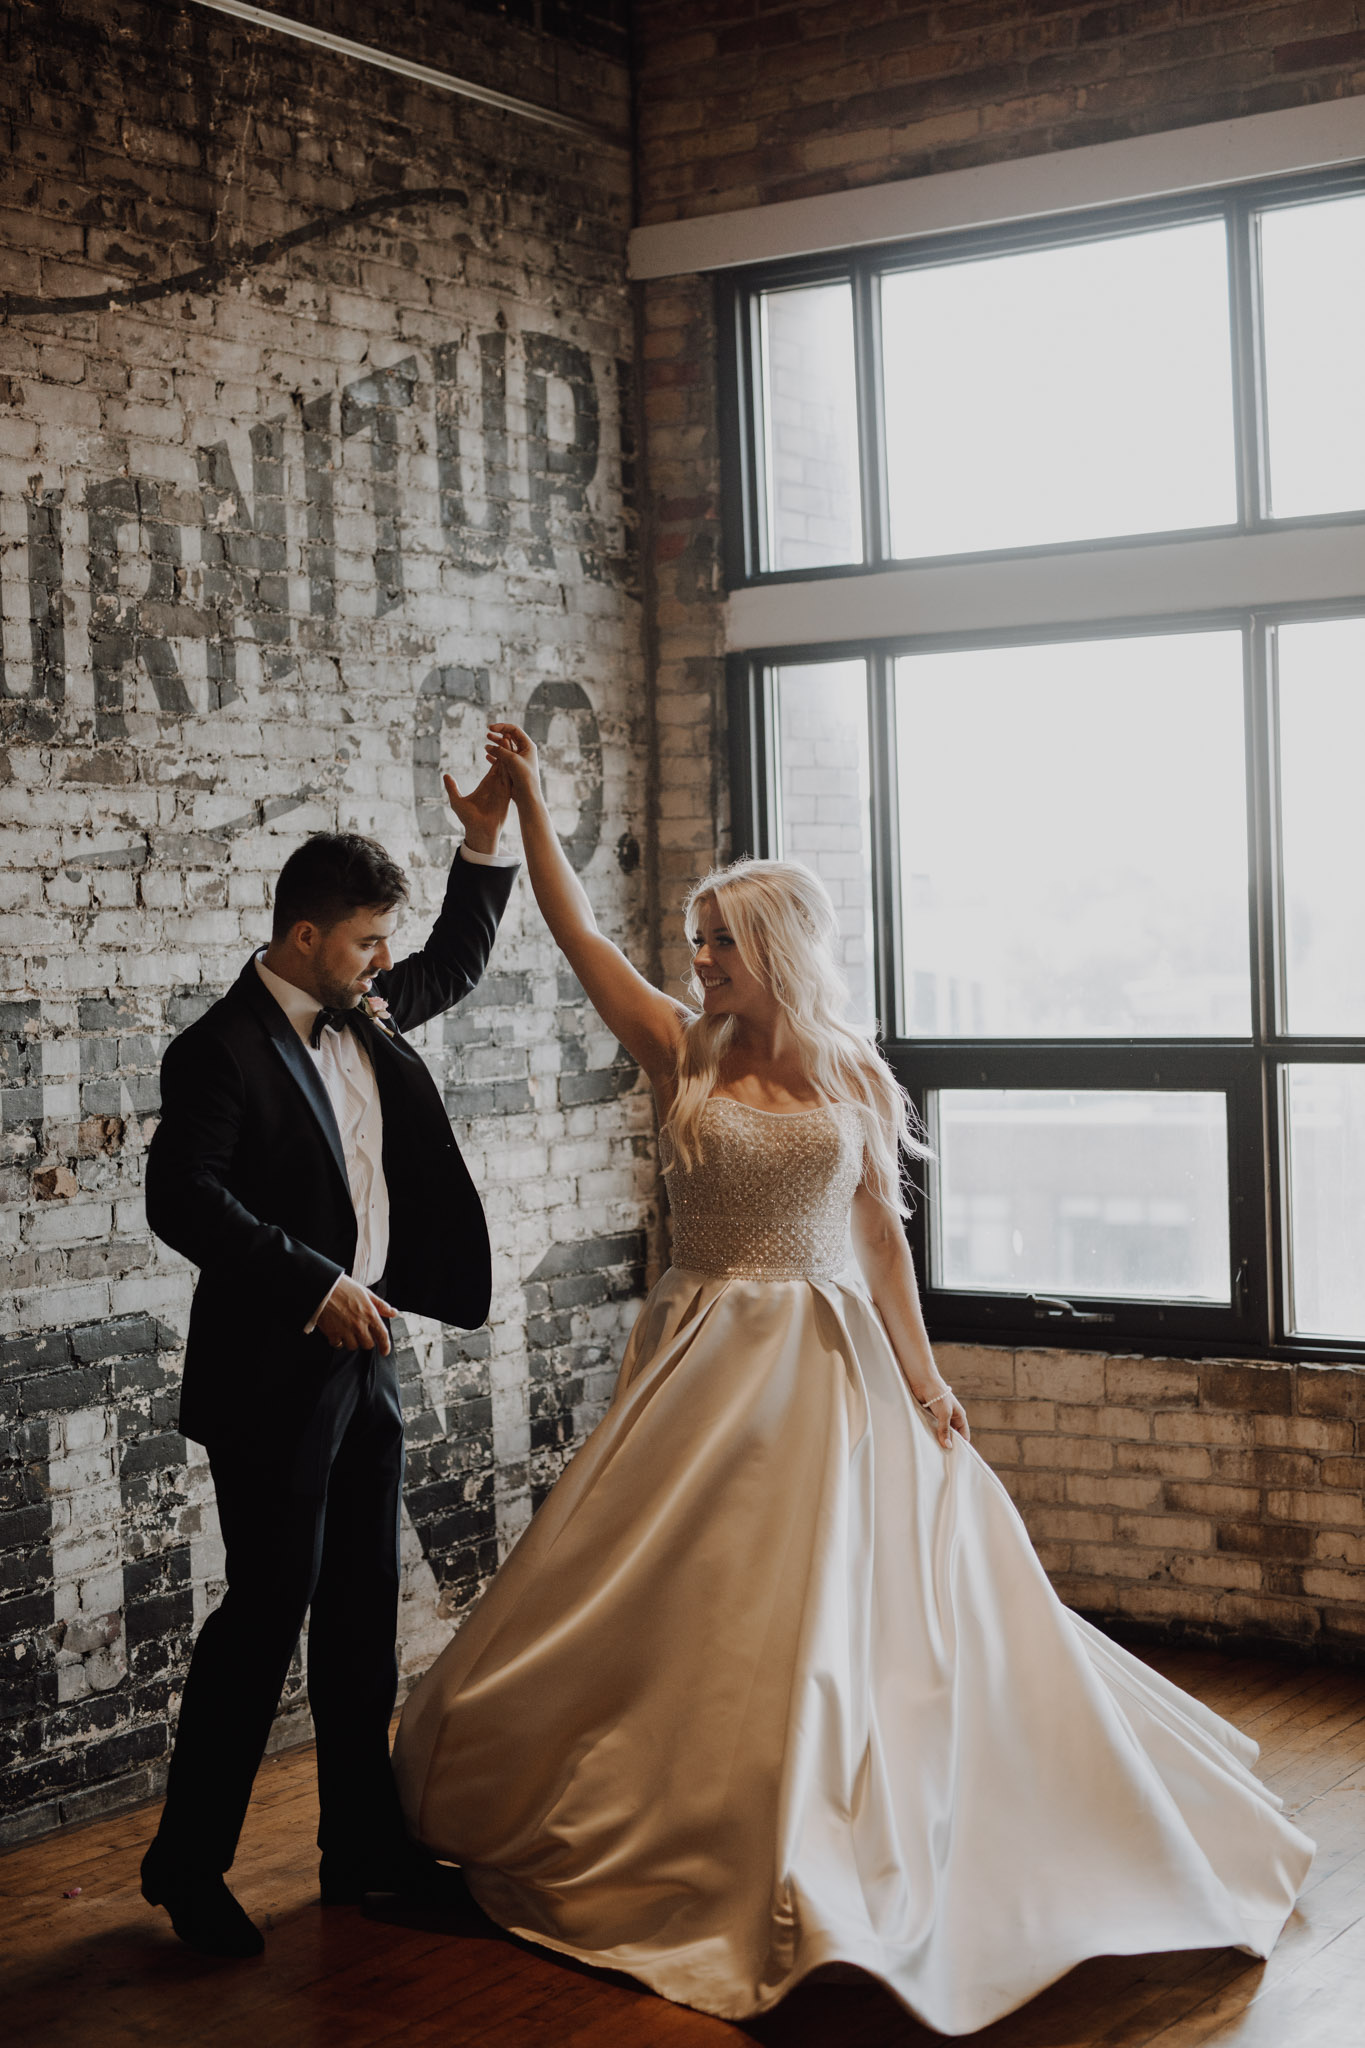 Epic spin at The Burroughes Wedding. Love By Lynzie. Wedding Photographer Jennifer See Studios.